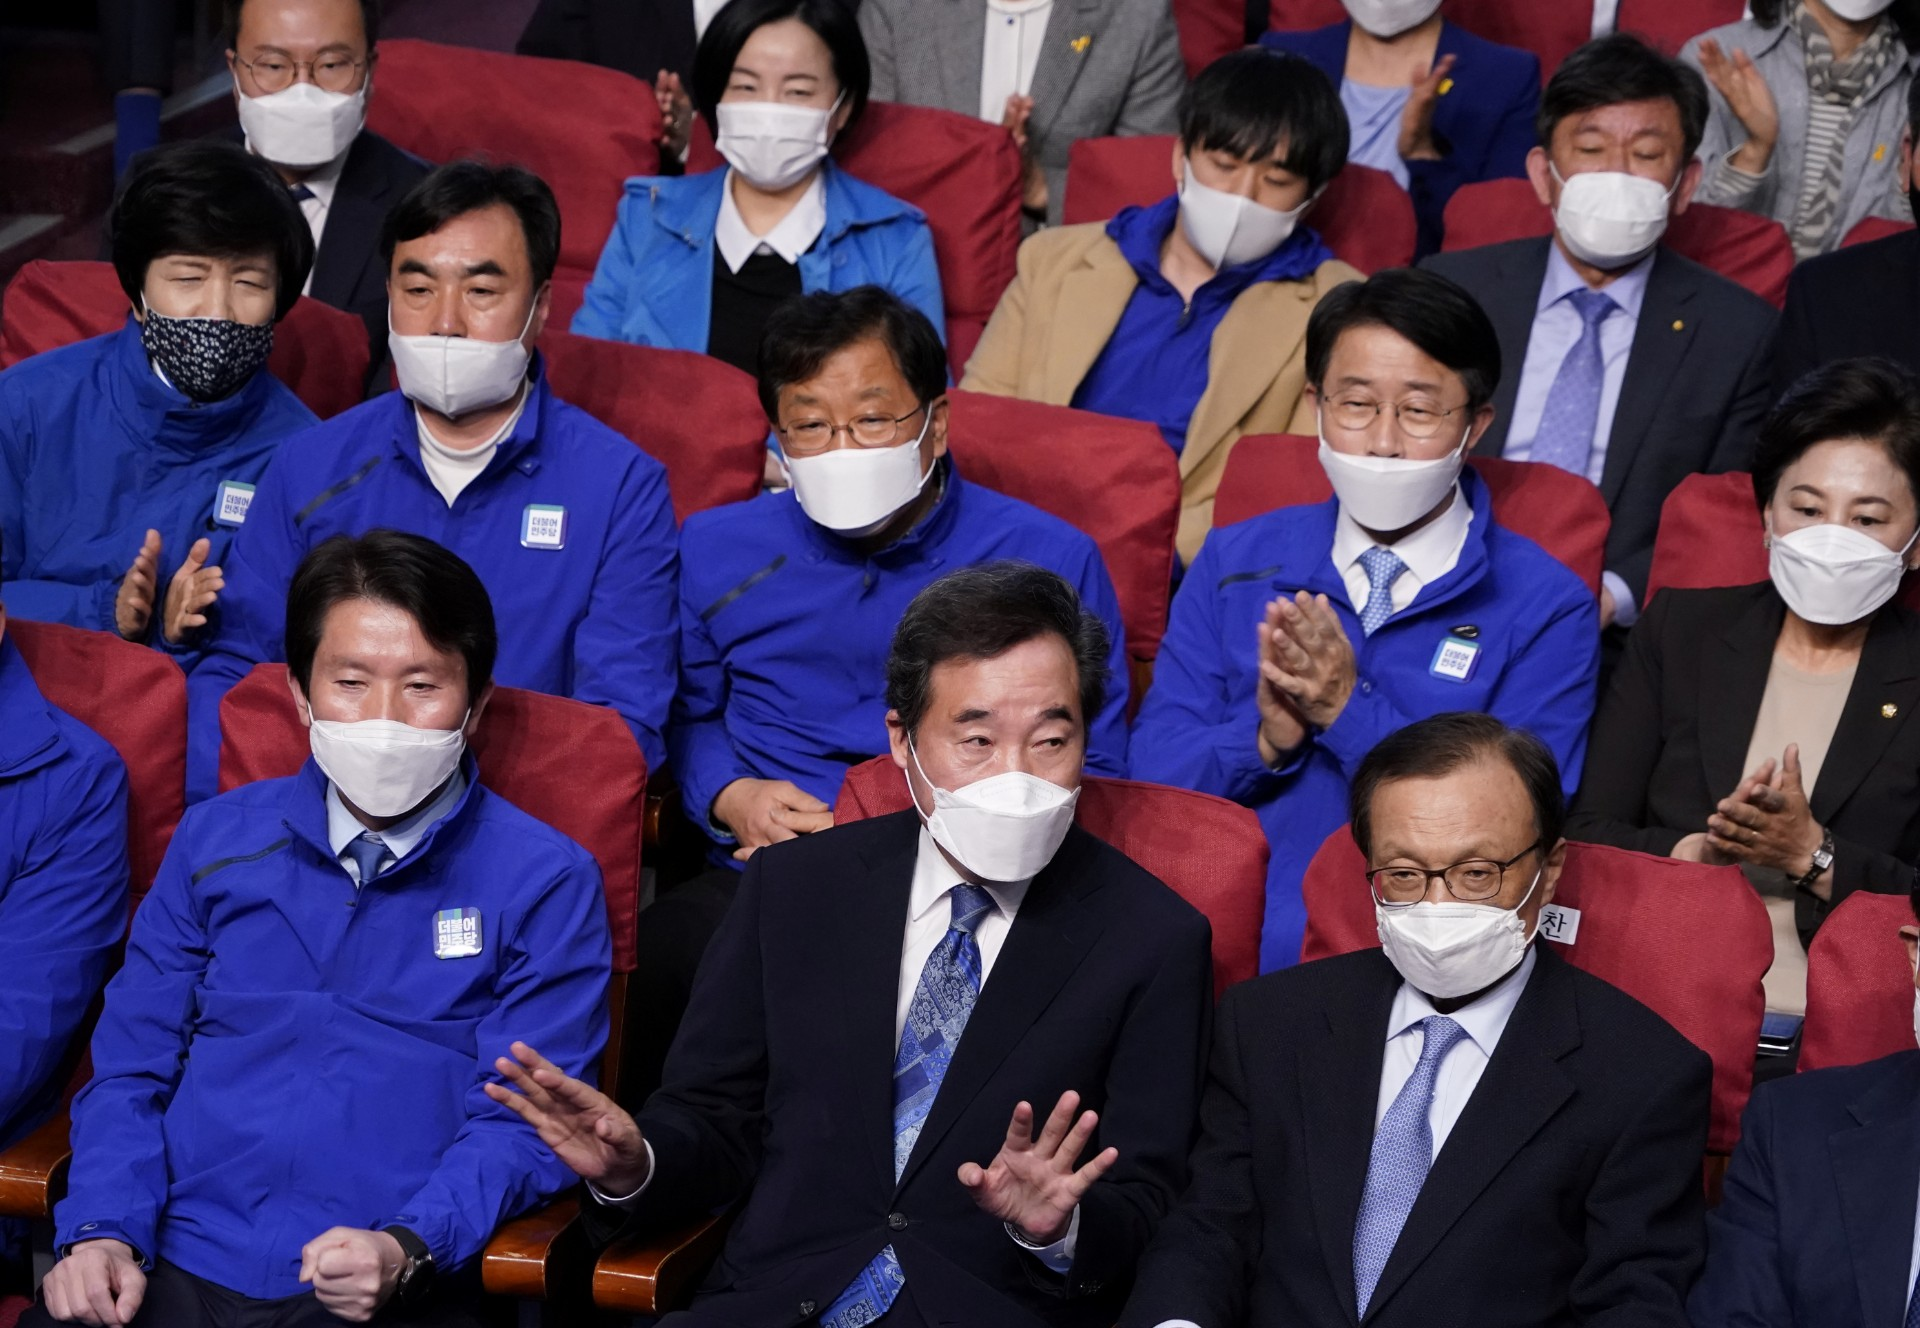 SOUTHKOREA-ELECTION-REAX-CCP VIRUS